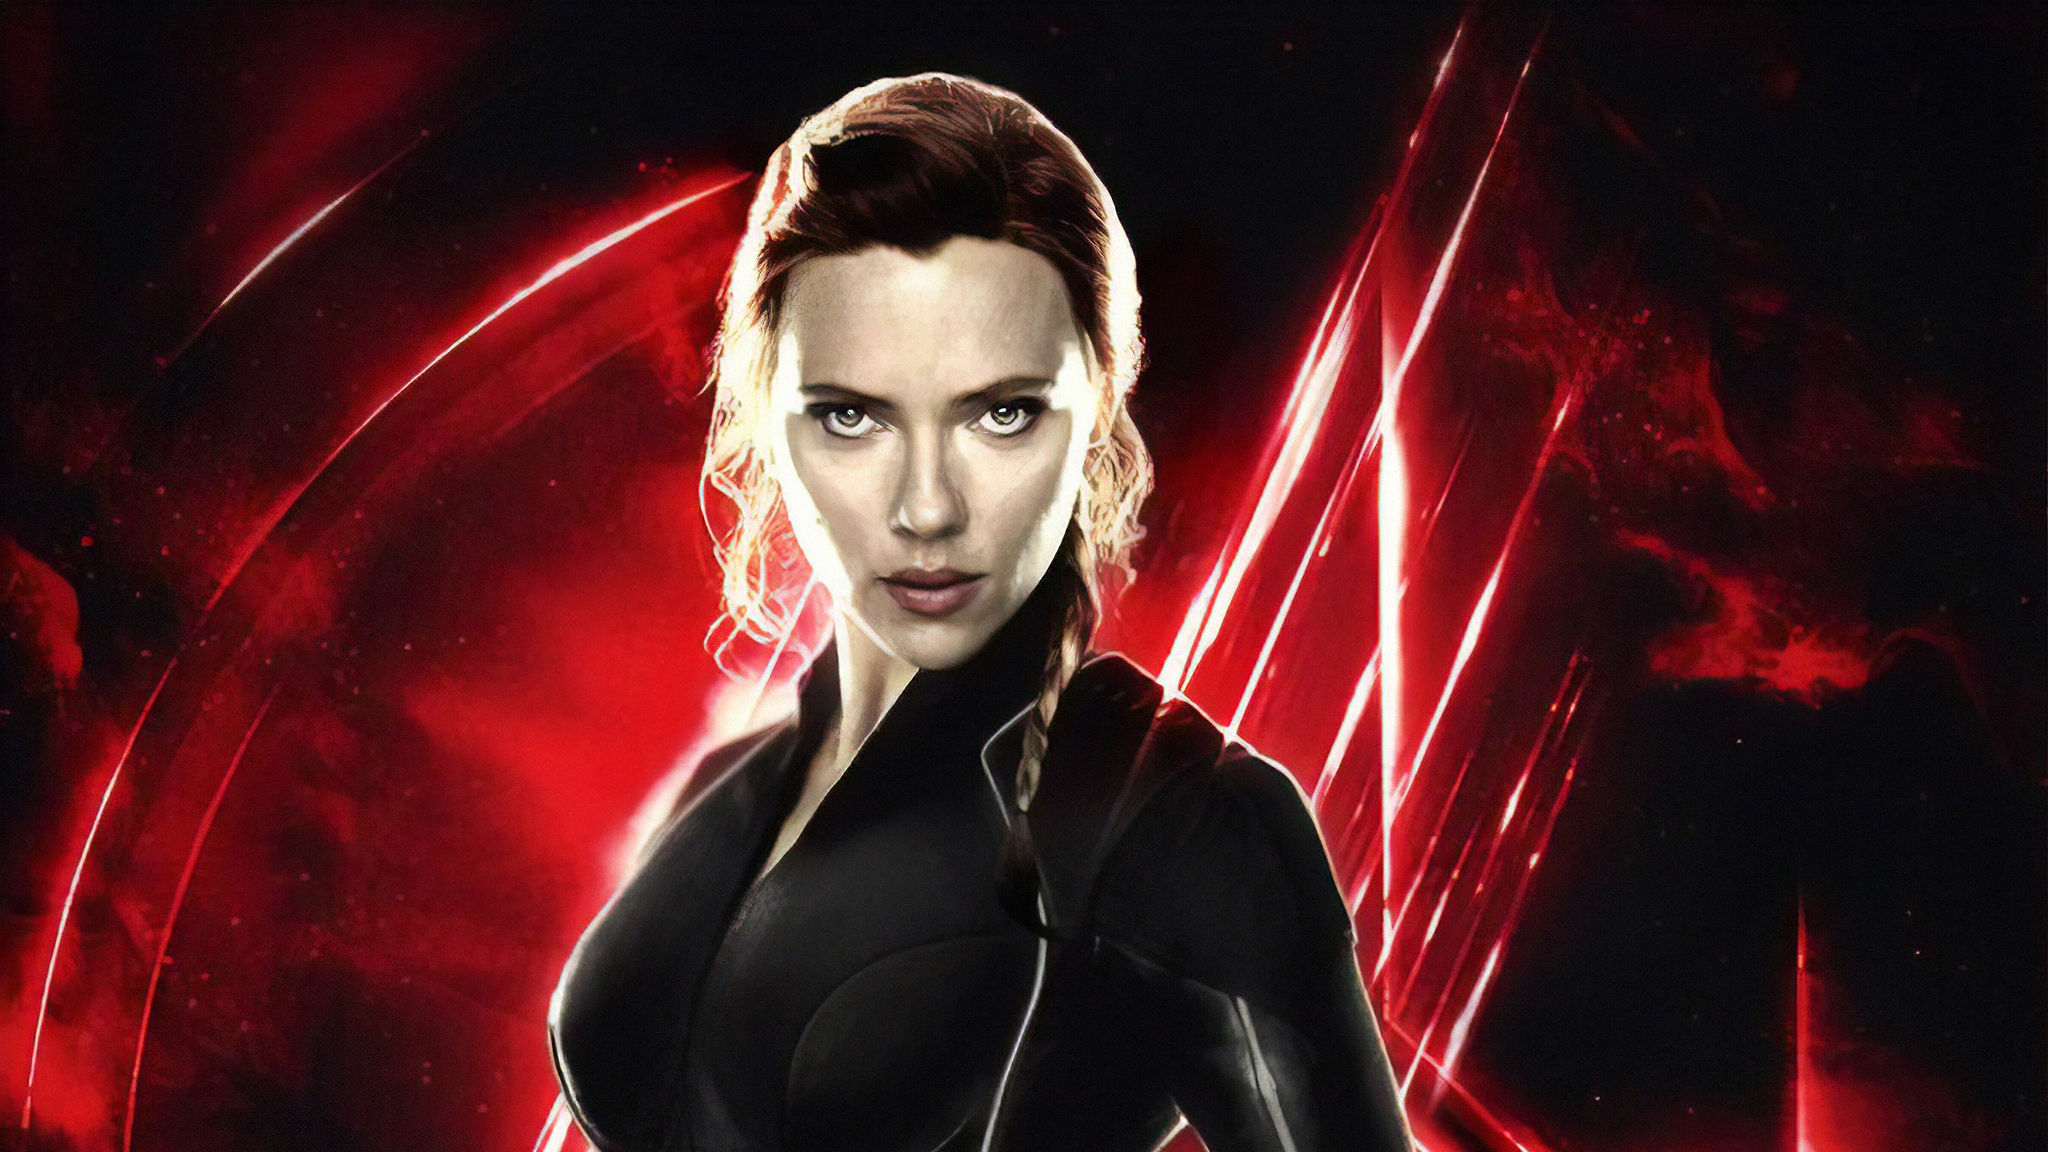 2048x1152 Avengers End Game Black Widow 2048x1152 Resolution Hd 4k Wallpapers Images Backgrounds Photos And Pictures